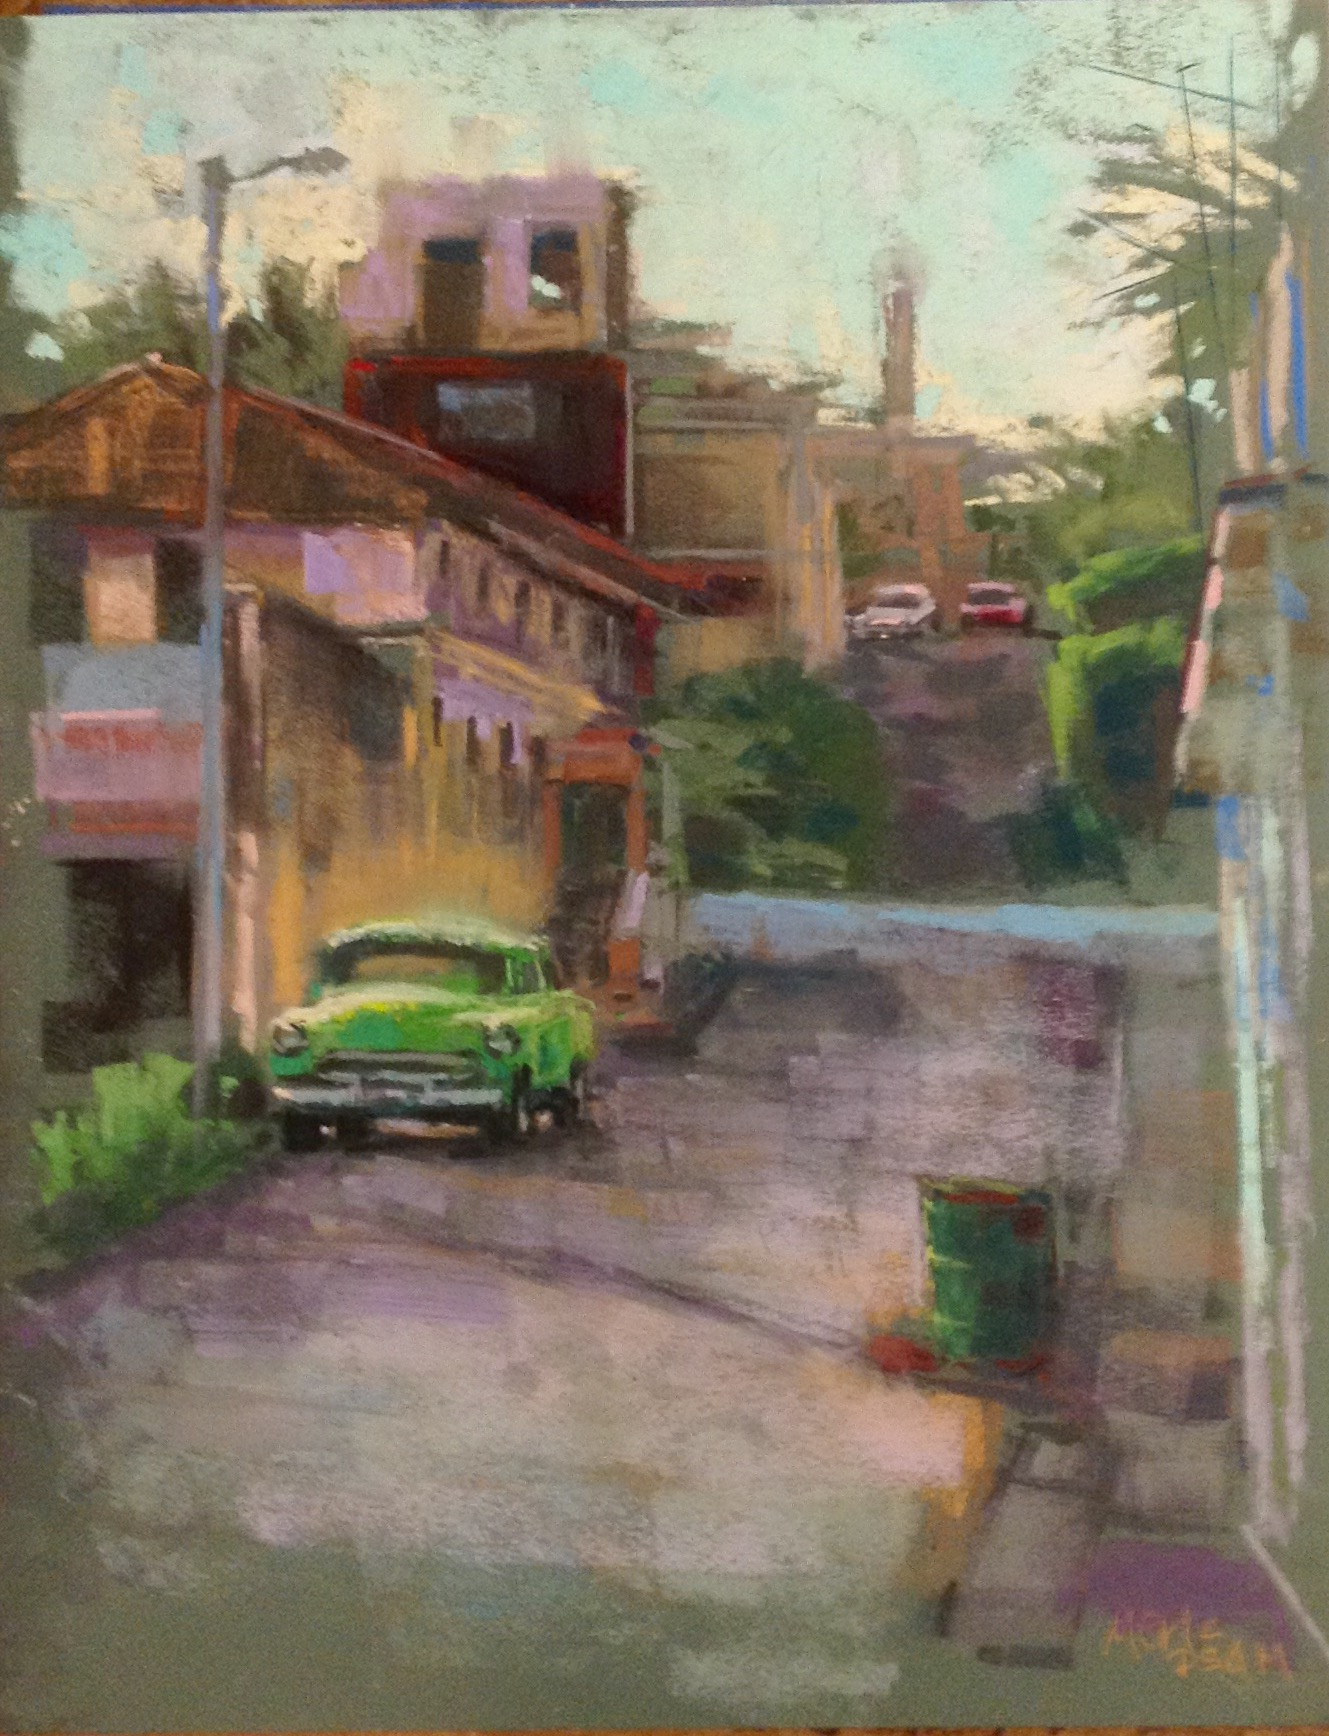 "Nancie King Mertz, ""Cojimar Car,"" 2016, plein air soft pastel on mounted Wallis paper, 14 x 11 in. I was very lucky to spend 6 days in Cuba along with 99 others, hosted by Plein Air Magazine. We were the first group of painters to flood the streets and had a blast painting this colorful culture. There were only 2-3 of us working in pastel and many of the oil painters envied our easy setup! I did 11 plein air works while there. This was painted in the fishing village where Hemingway lived while in Cuba."